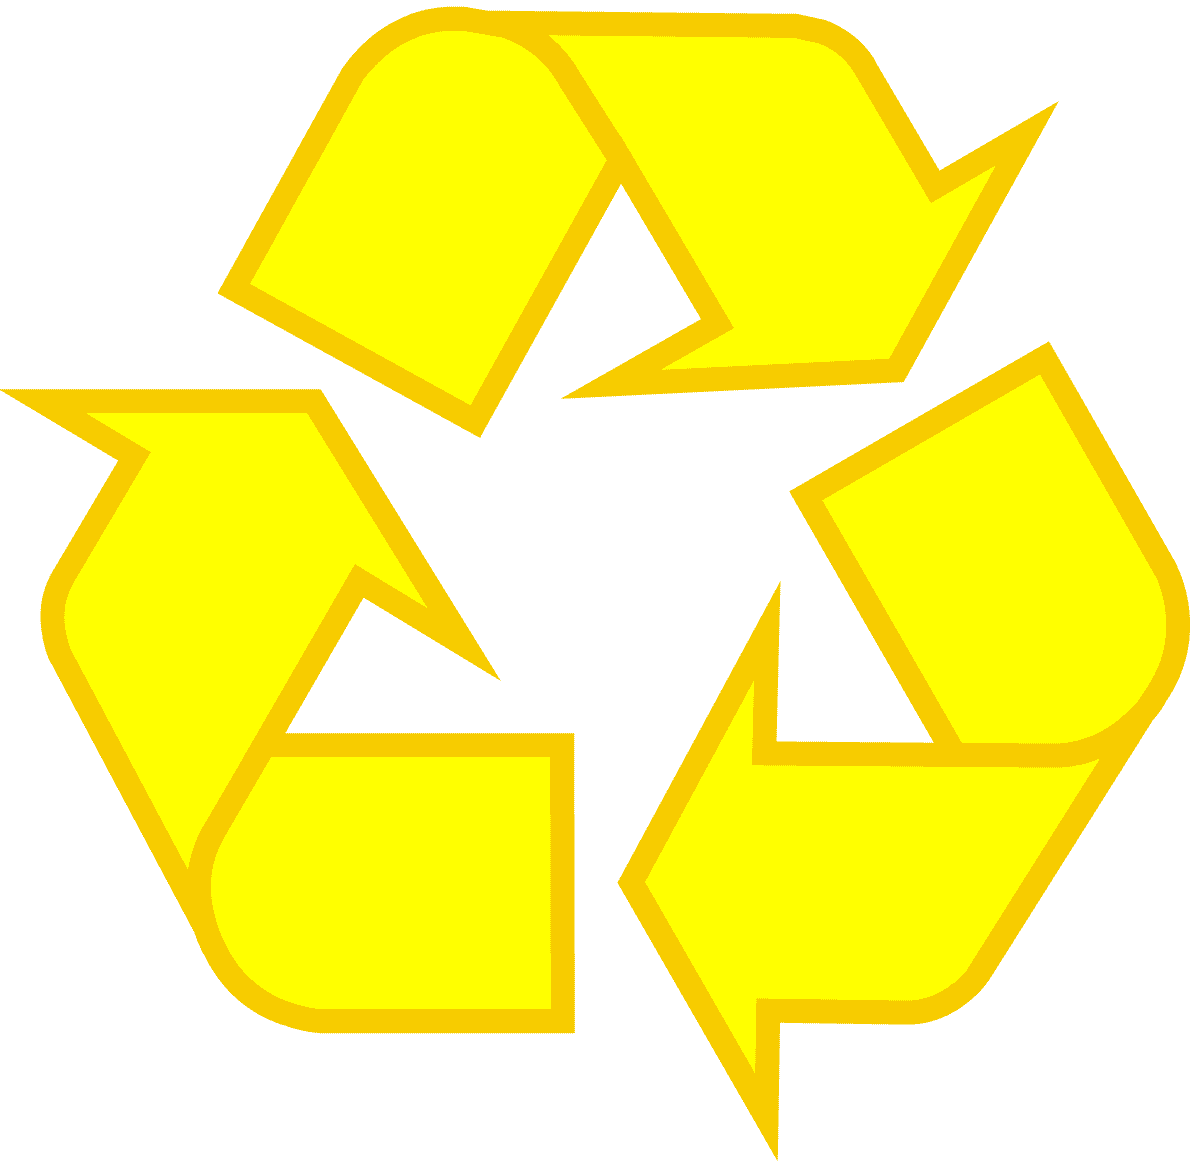 Download recycling symbol the original recycle logo light green recycling symbol buycottarizona Choice Image